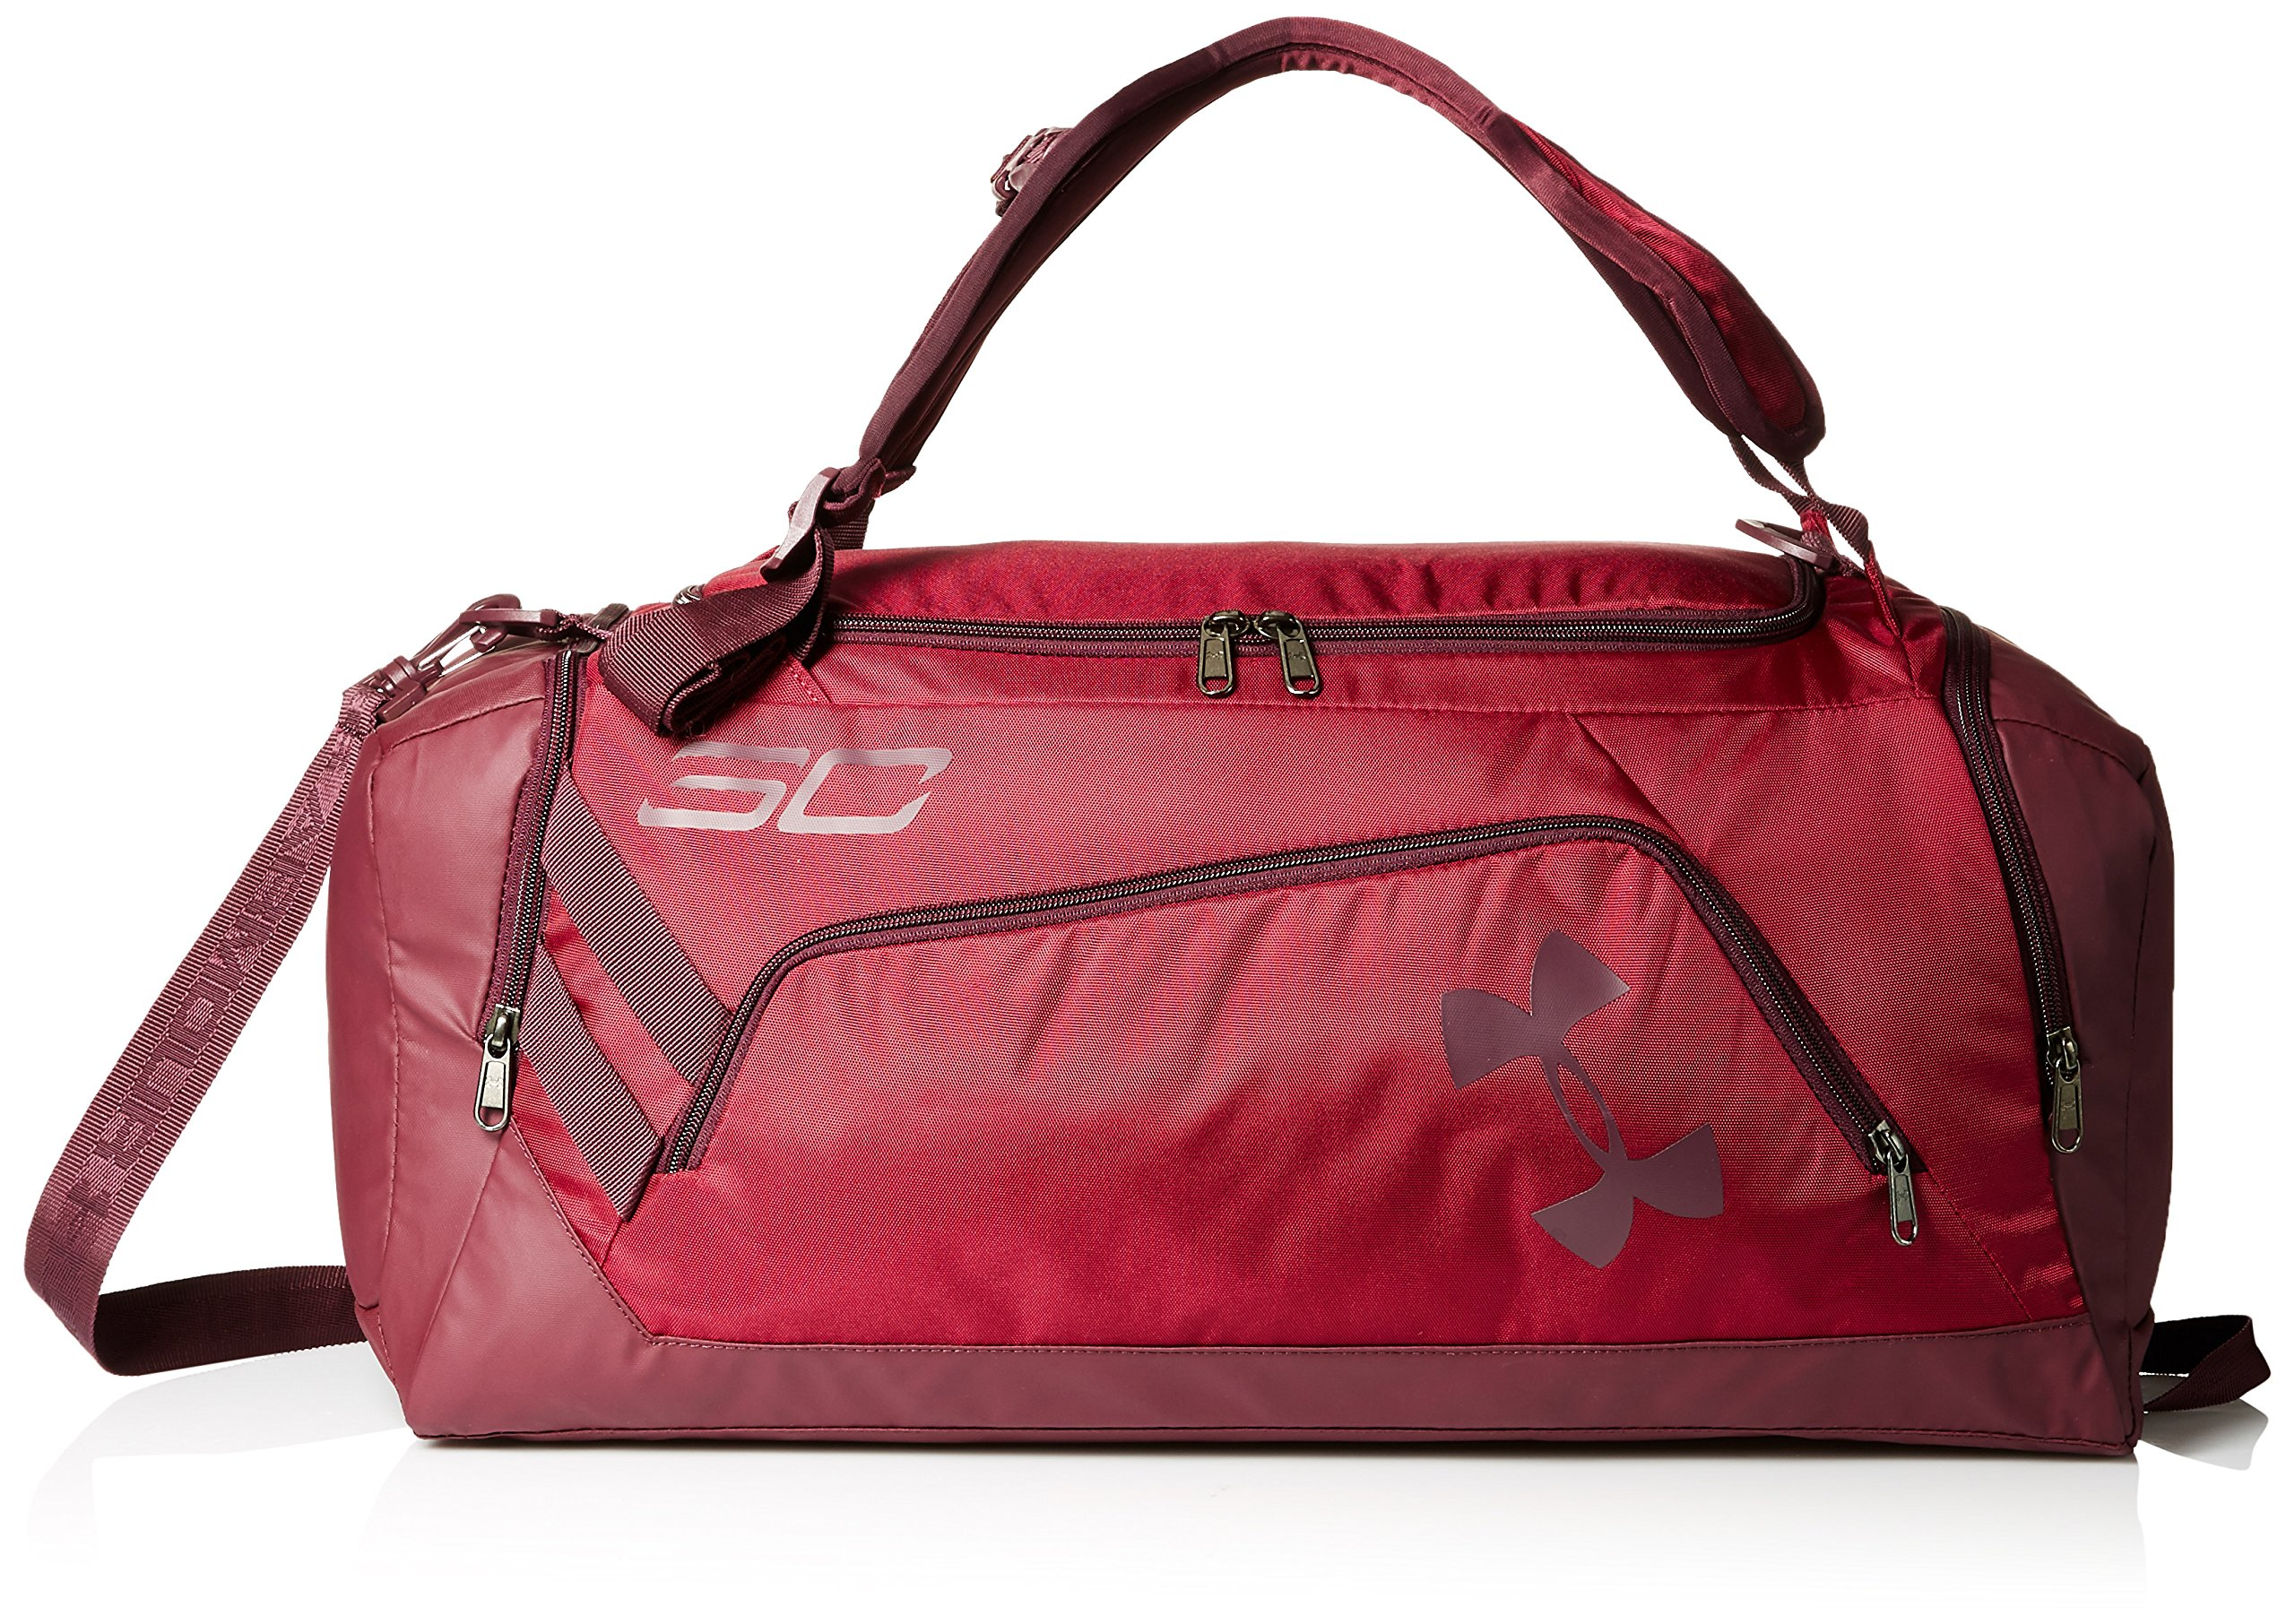 Under Armour SC30 Storm Contain Duffle,Black Currant (923)/Raisin Red, One Size by Under Armour